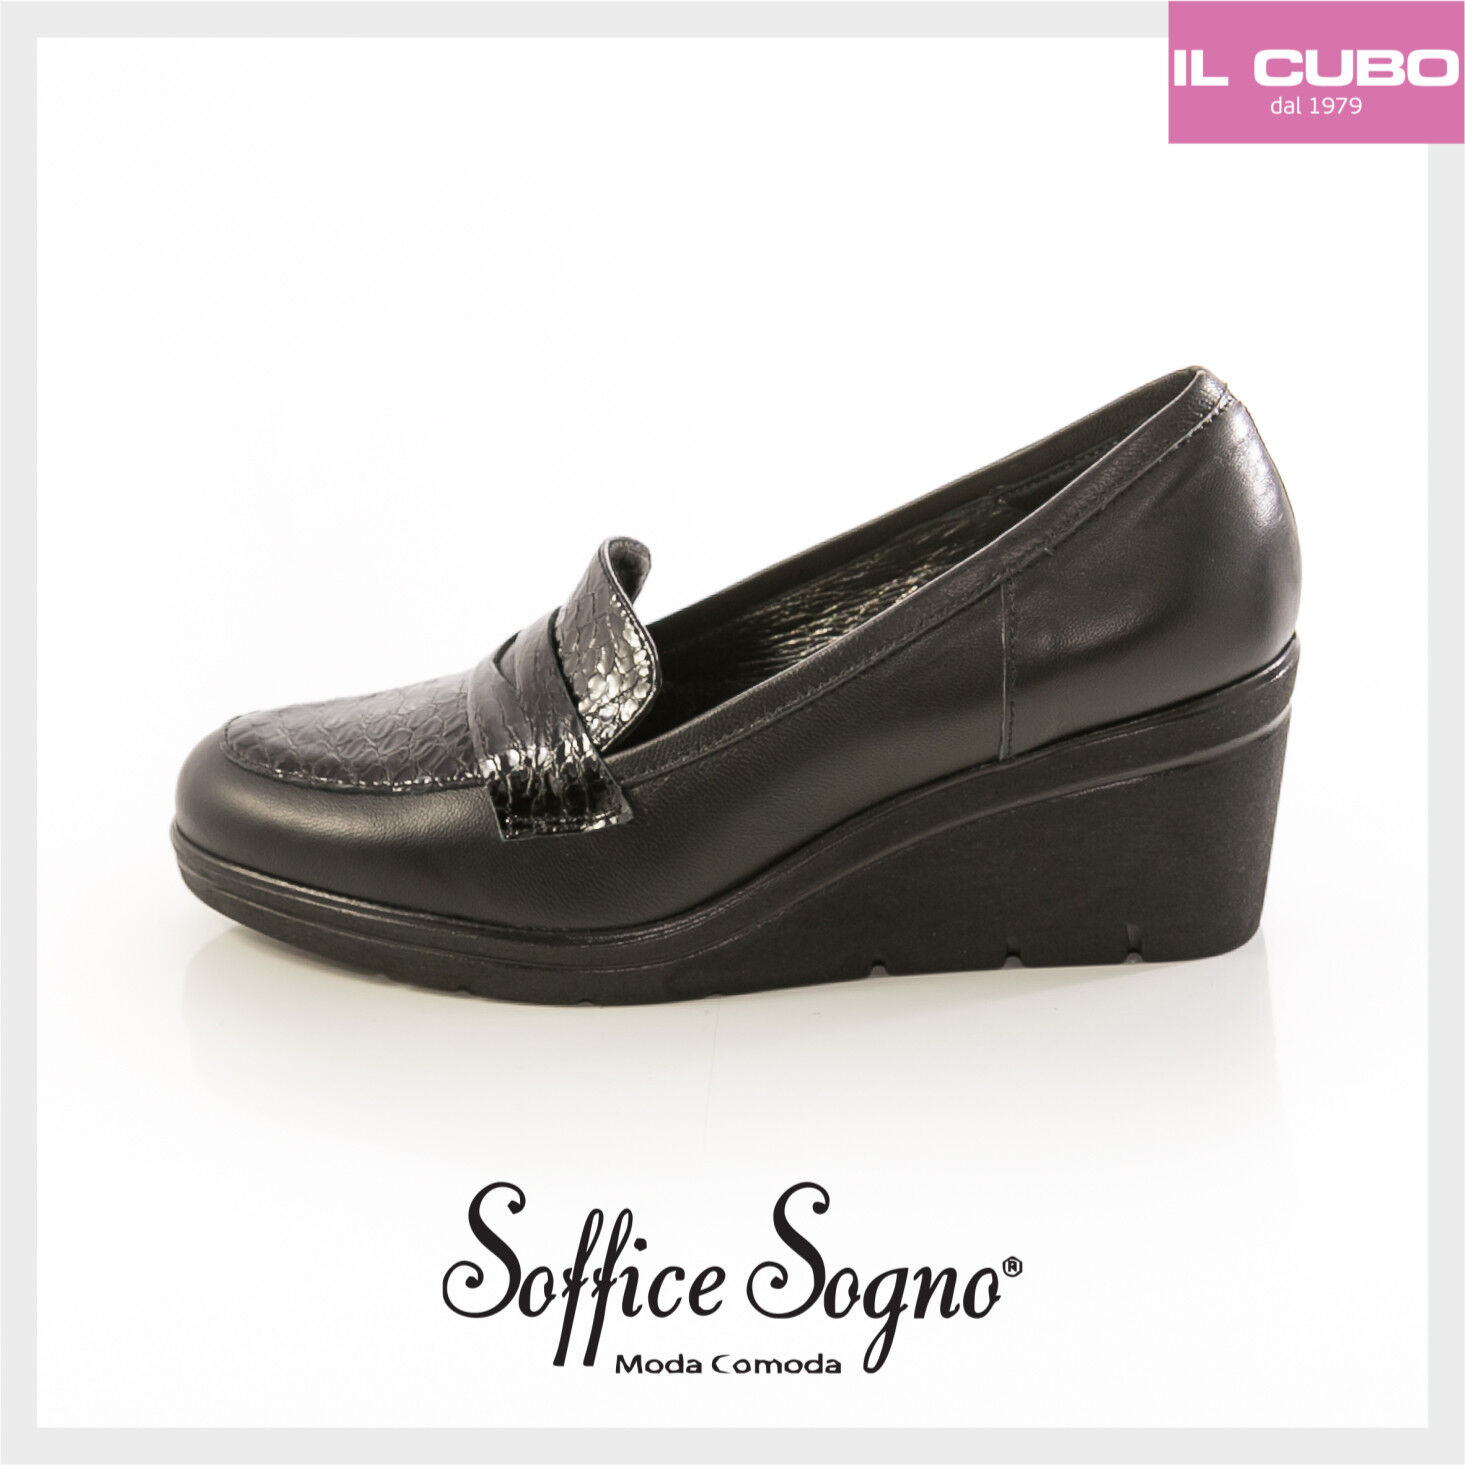 SOFFICE SOGNO SCARPA women MOCASSINO PELLE  black ZEPPA H 6 CM MADE IN ITALY